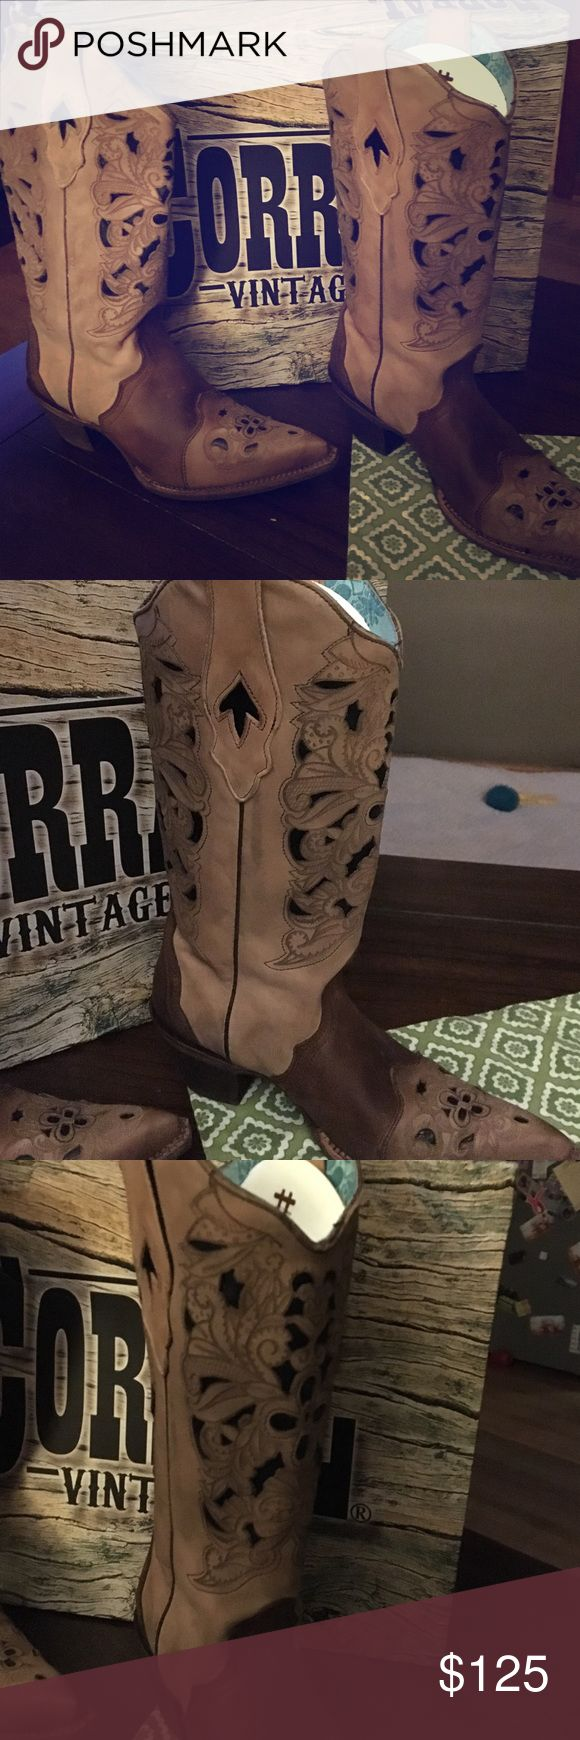 Corral Vintage Cowgirl Boots Corral Vintage Cowgirl Boots, size 8, never worn, Brown/Black Lazer Tool, Stk C1621 Corral Vintage Boots  Shoes Heeled Boots